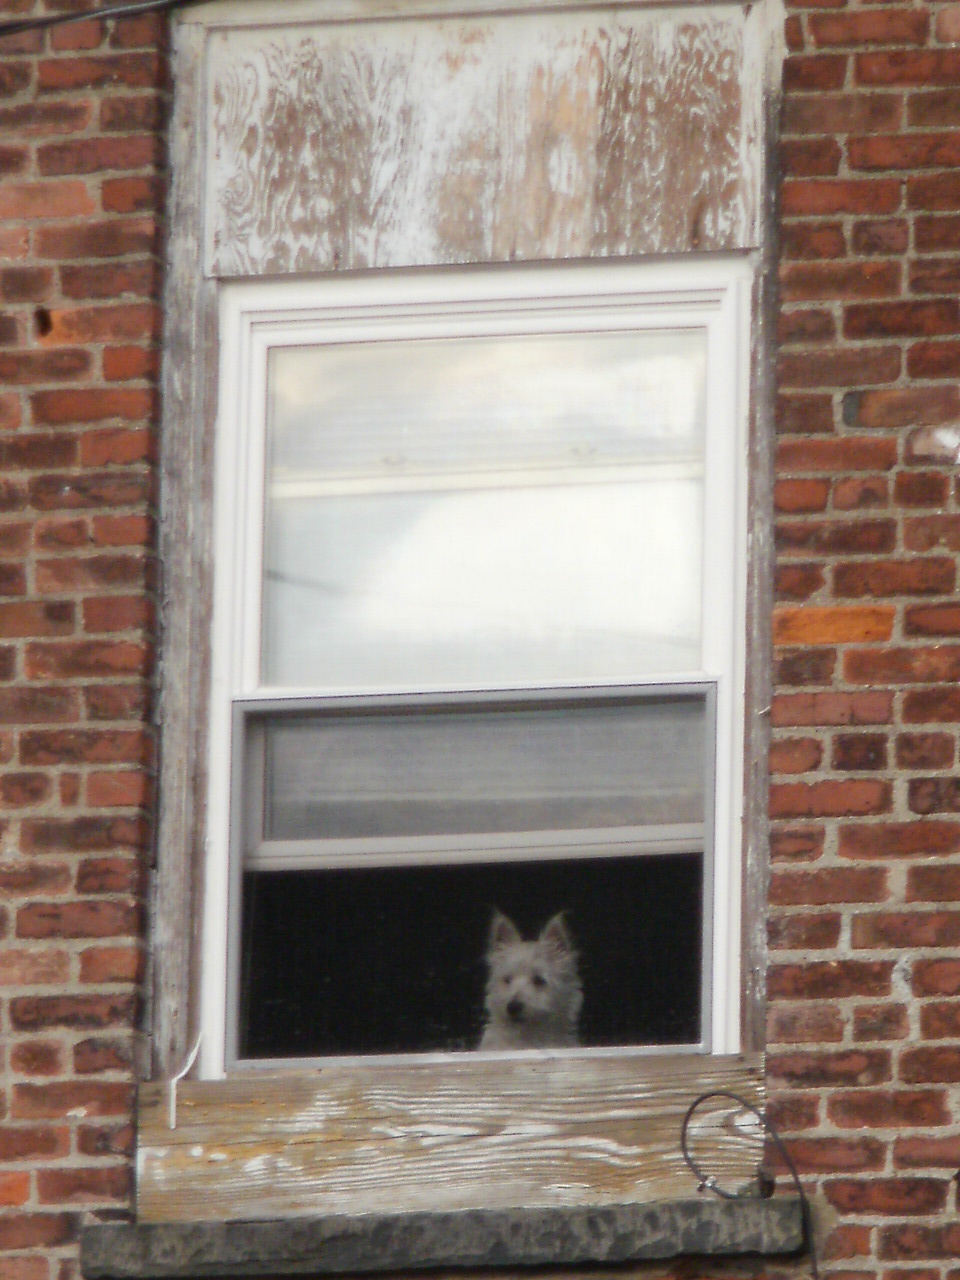 'Westie in window'